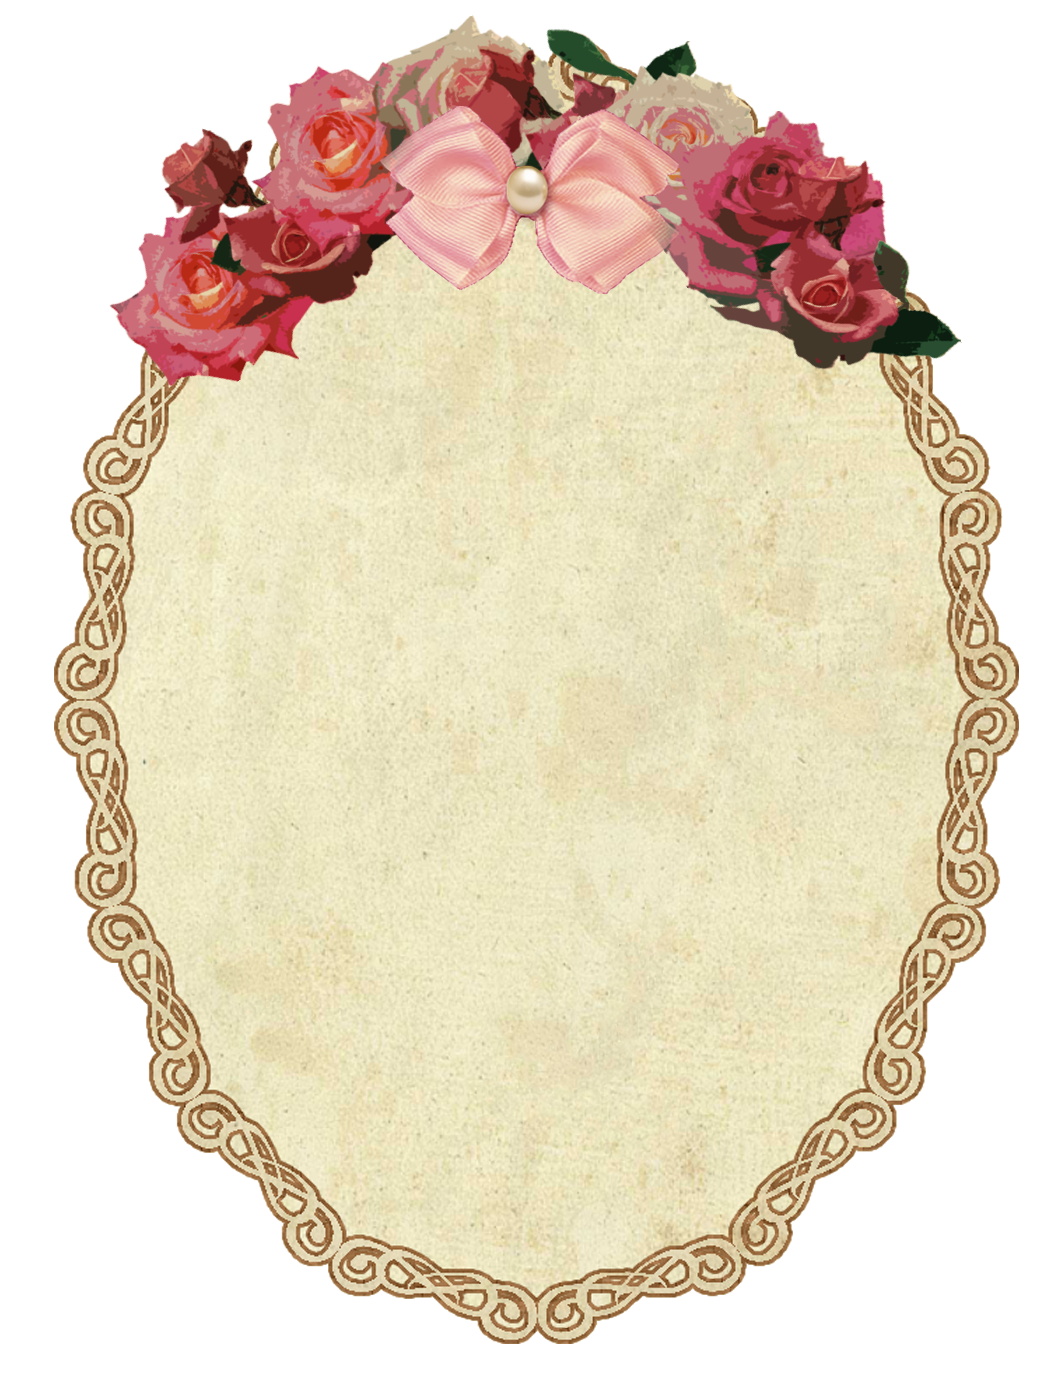 label frames png - photo #37